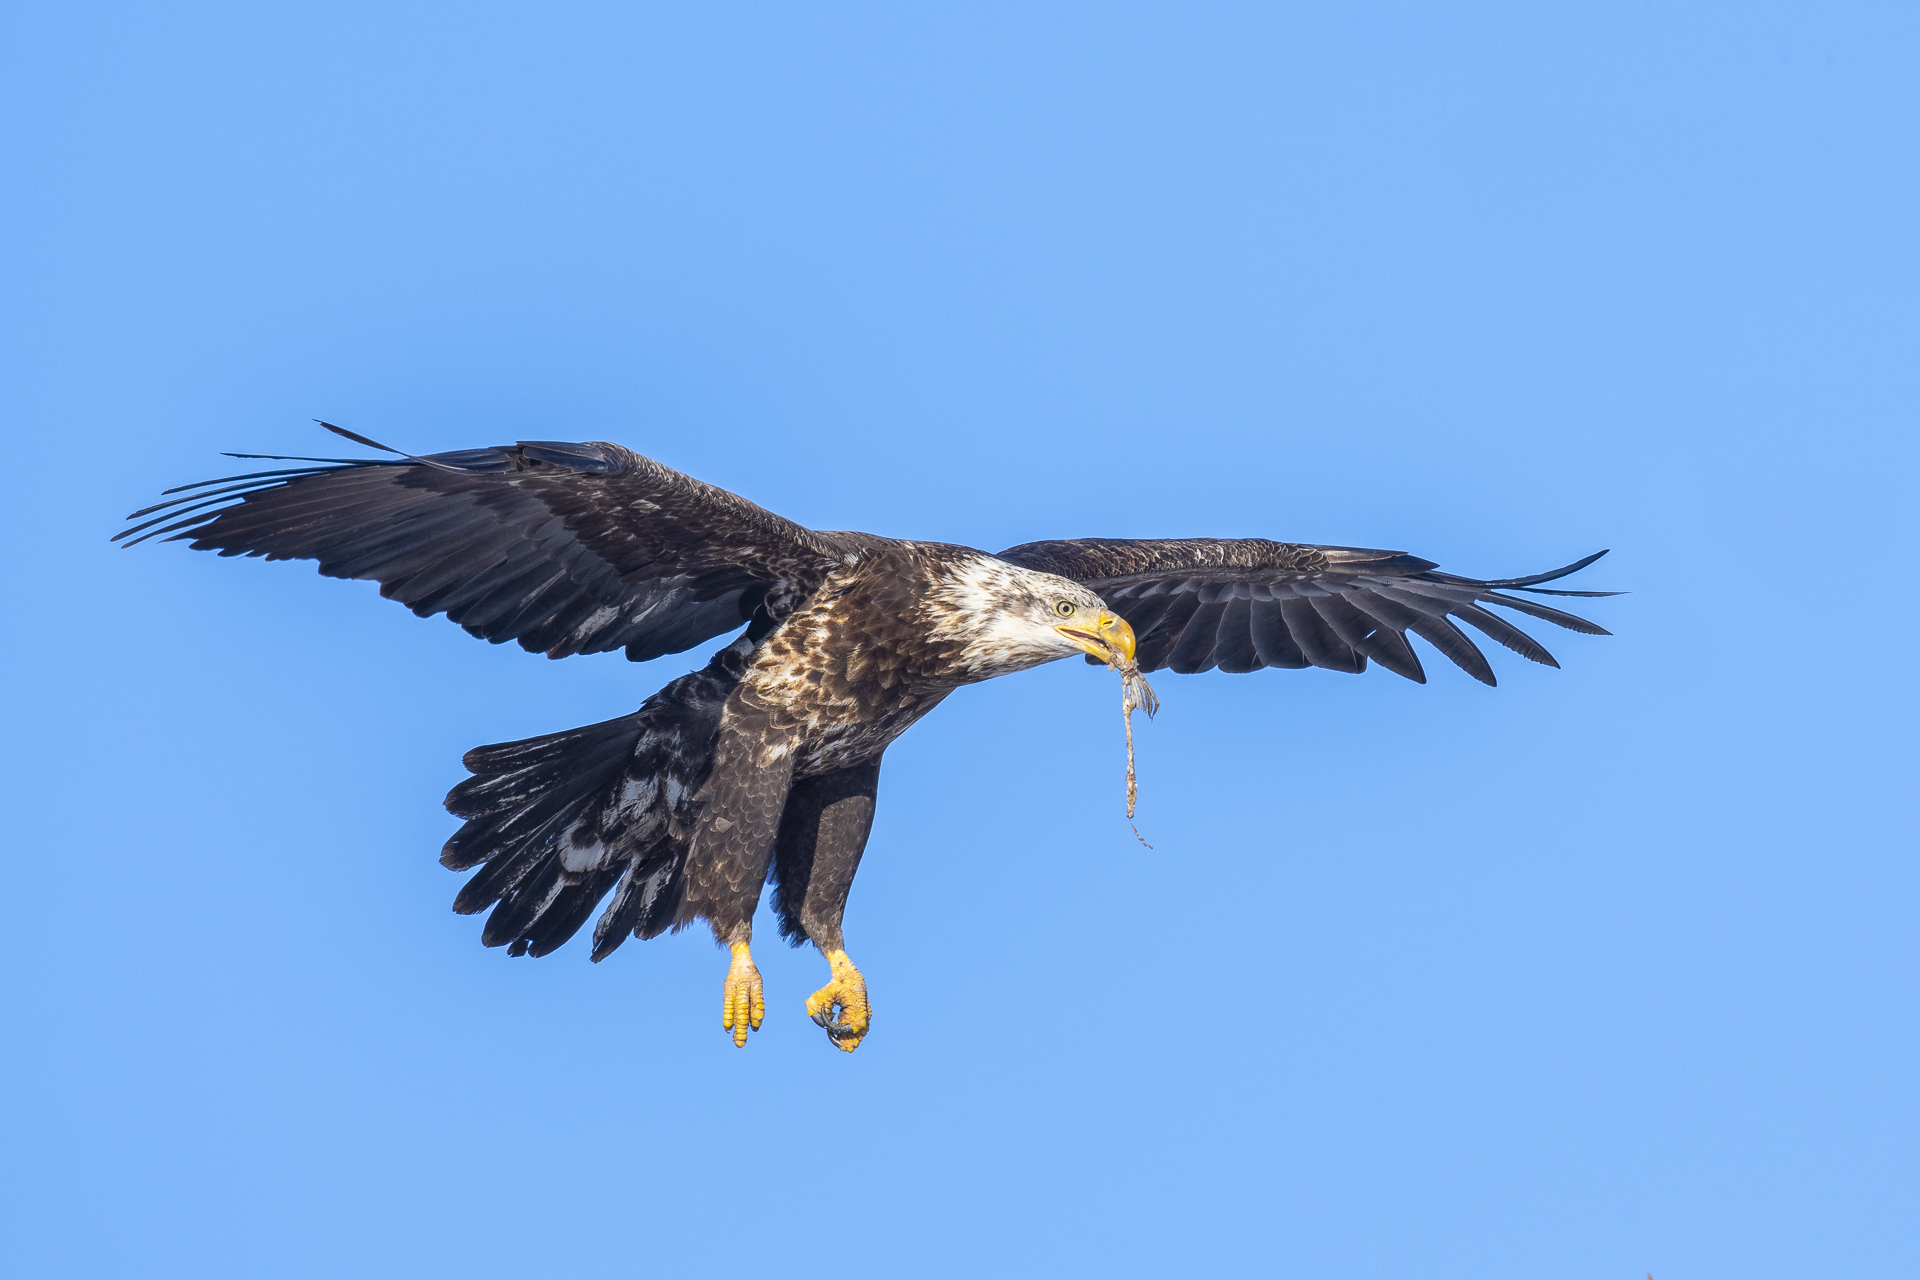 Immature bald eagle with fish remains